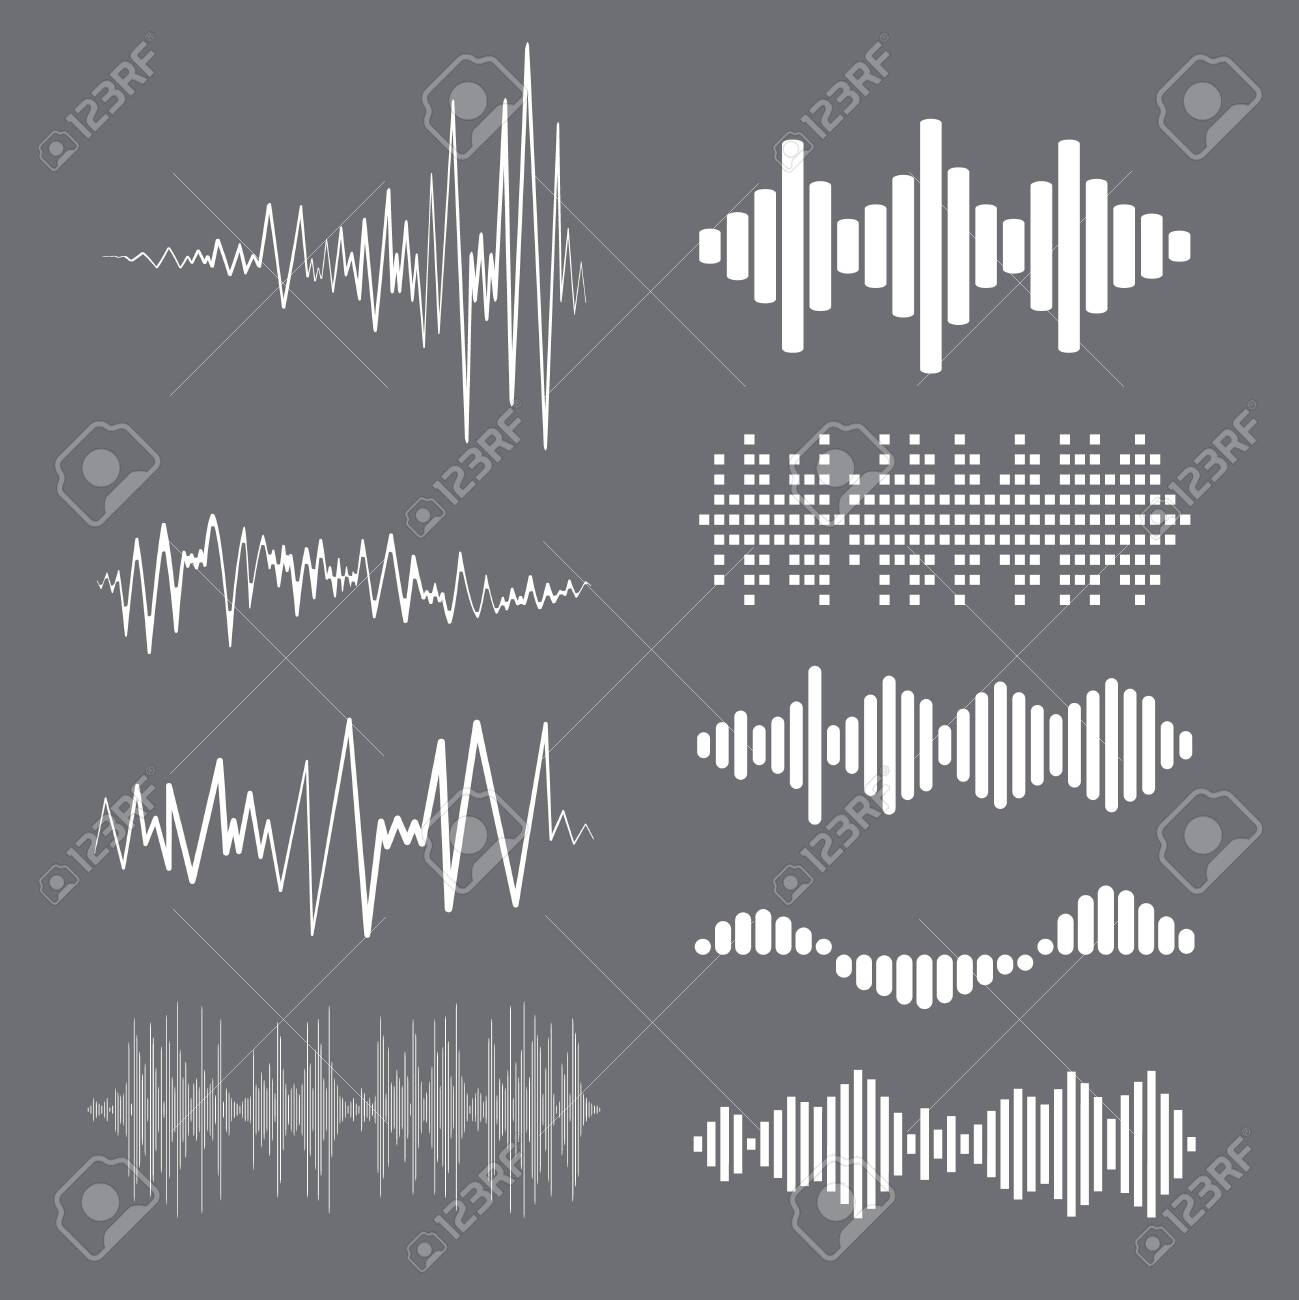 Collection white music wave on gray background. Vector set of isolated audio logos, pulse players, equalizer symbols sound design elements. - 151471504